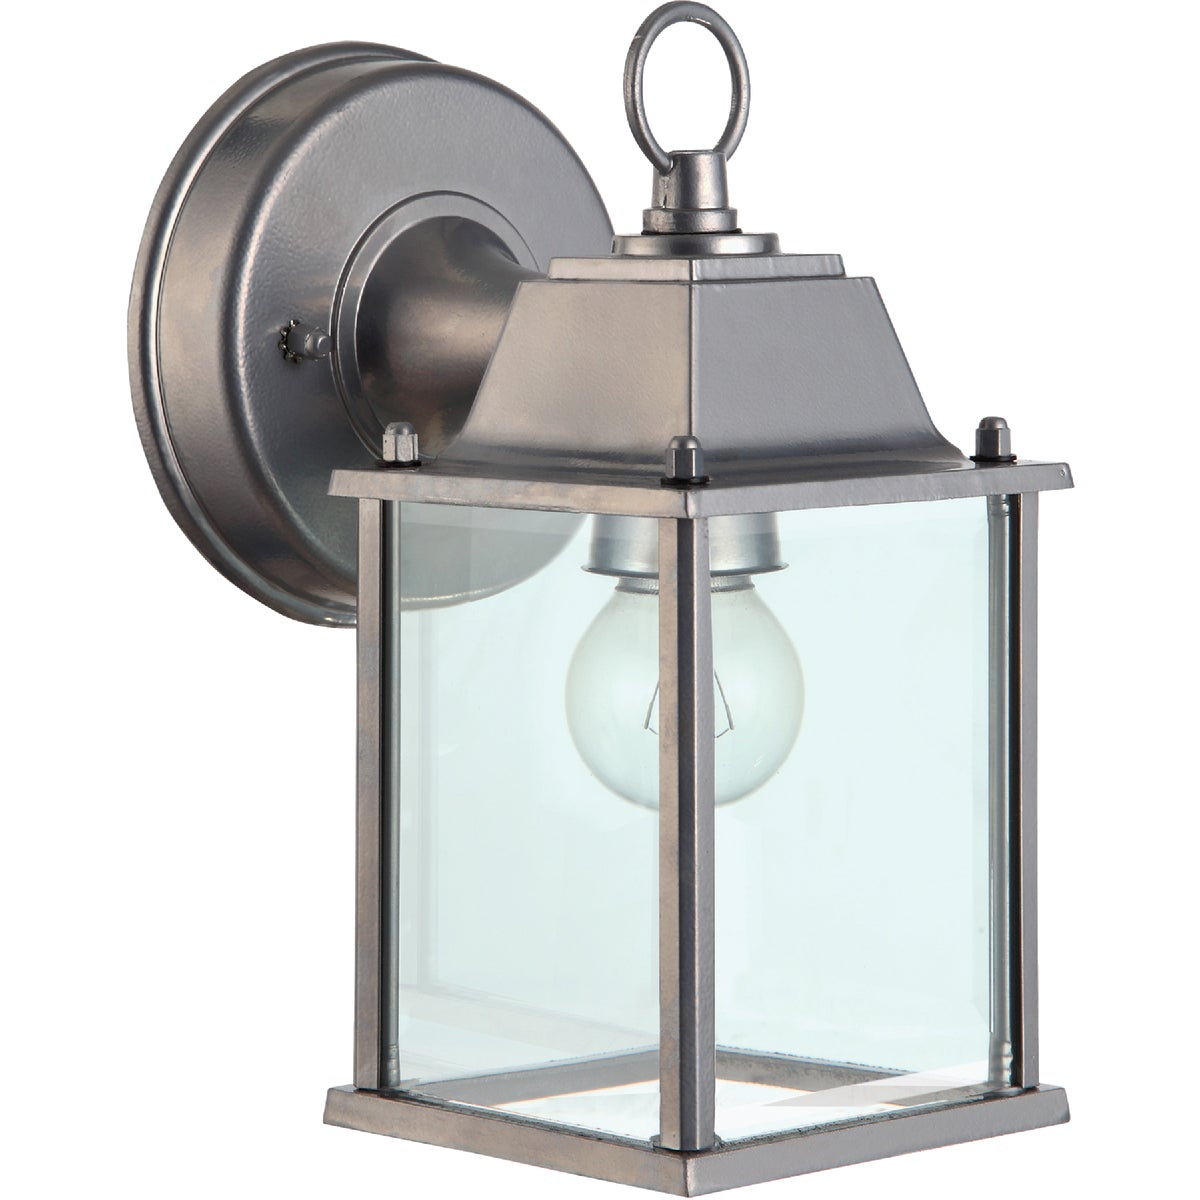 BN OUTDOOR WALL FIXTURE